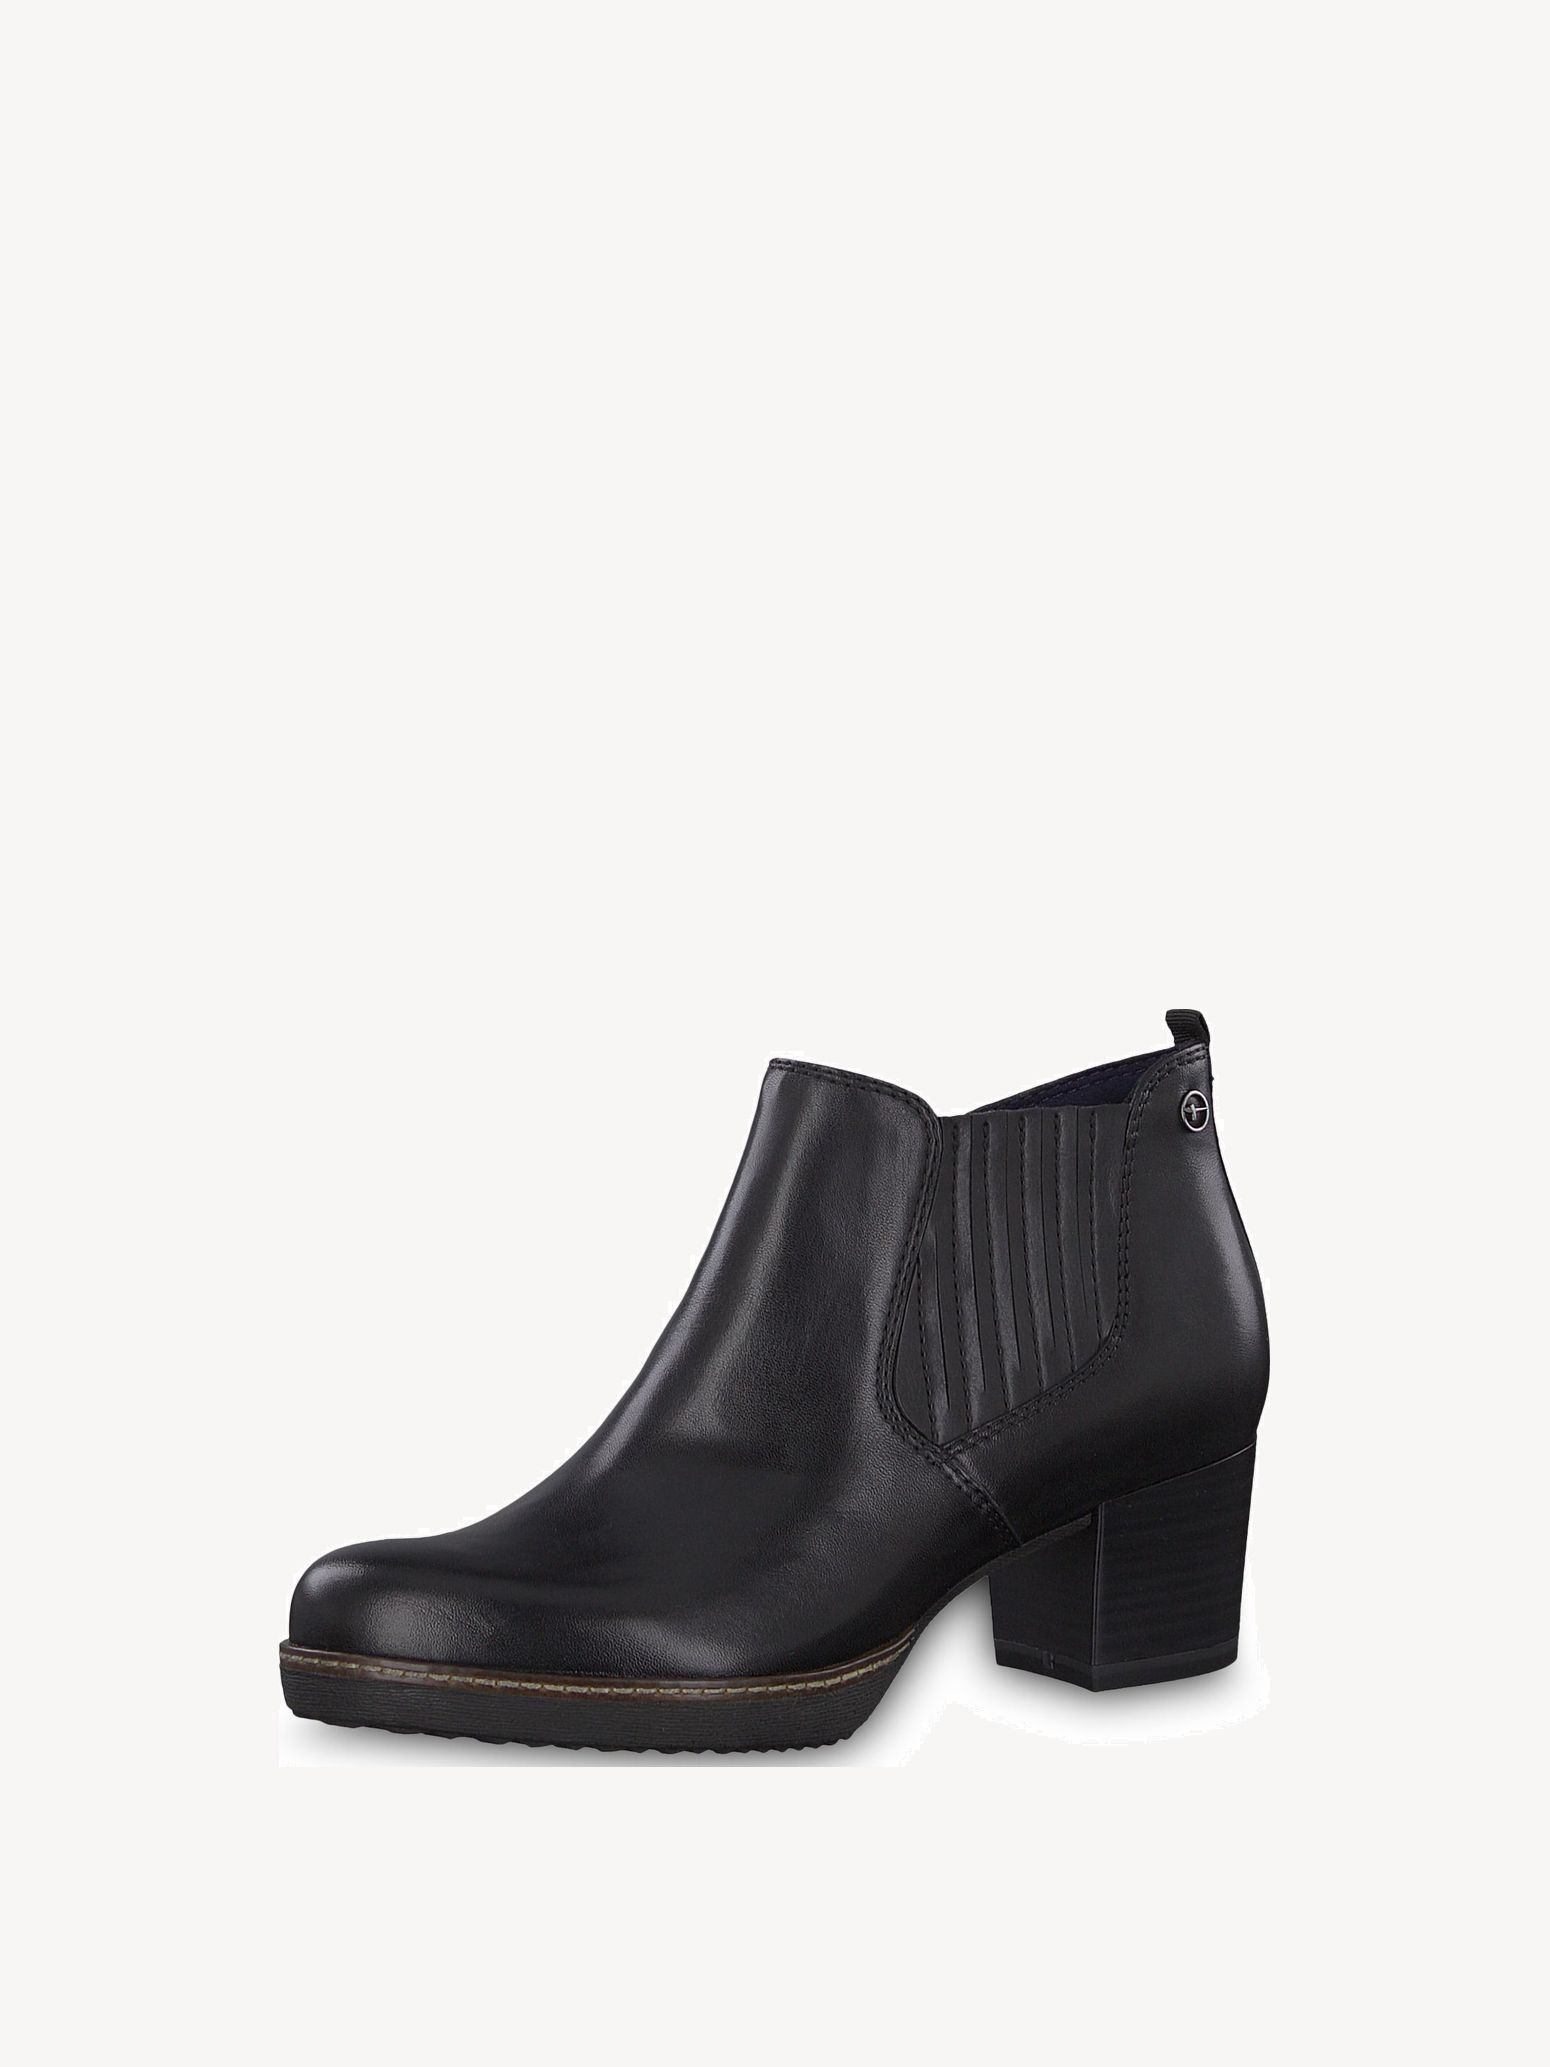 Leather Bootie - black, BLACK LEATHER, hi-res